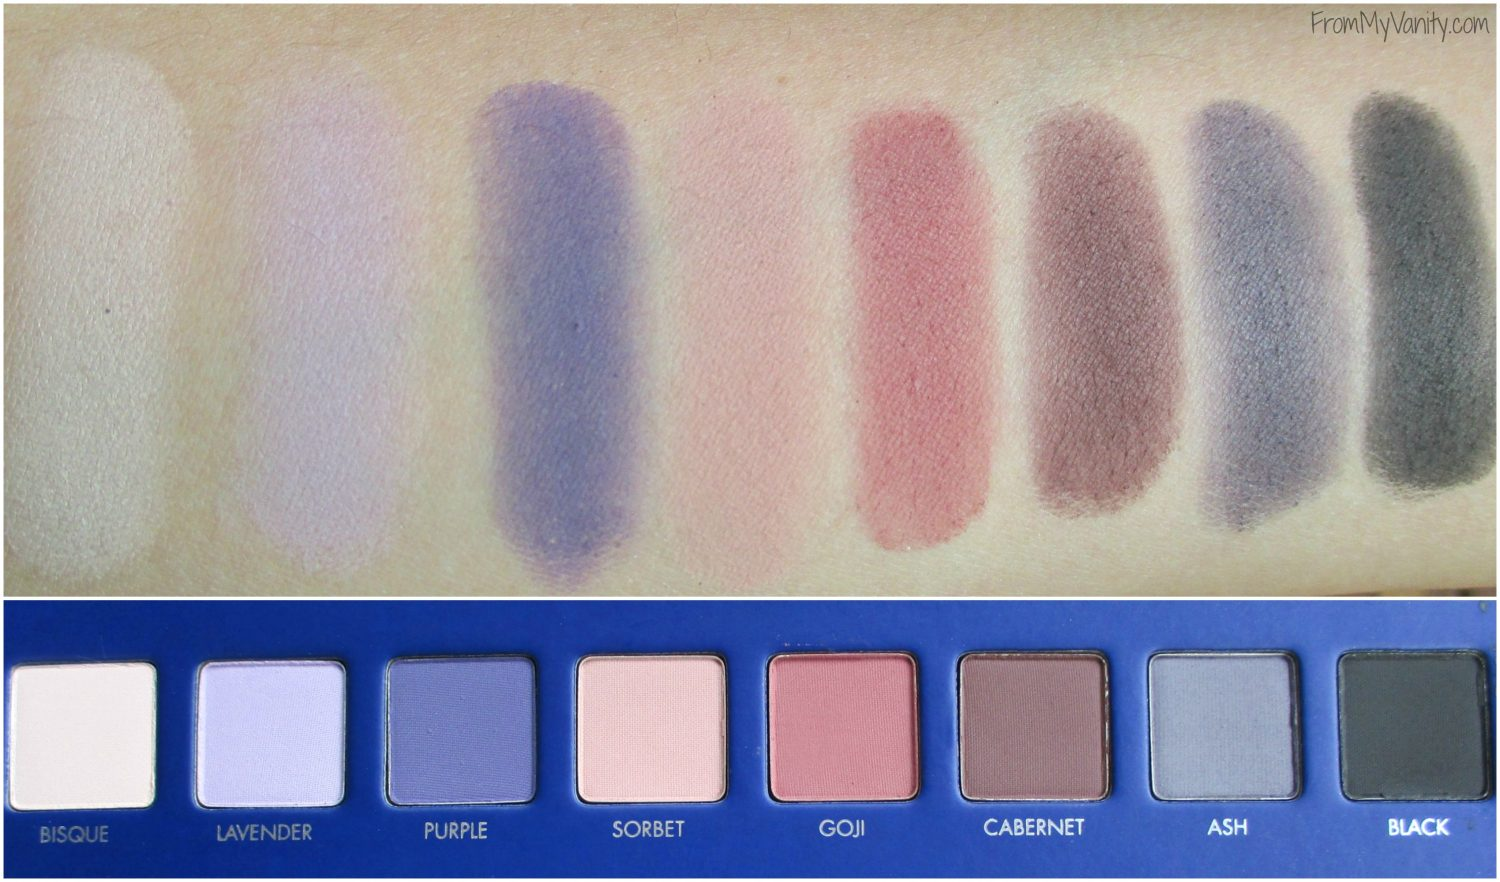 LORAC Mega Pro 2 Eyeshadow Palette // Review, Swatches, & Eye Looks // Swatches of Second Row // #LORACCosmetics #MegaPro2 FromMyVanity.com